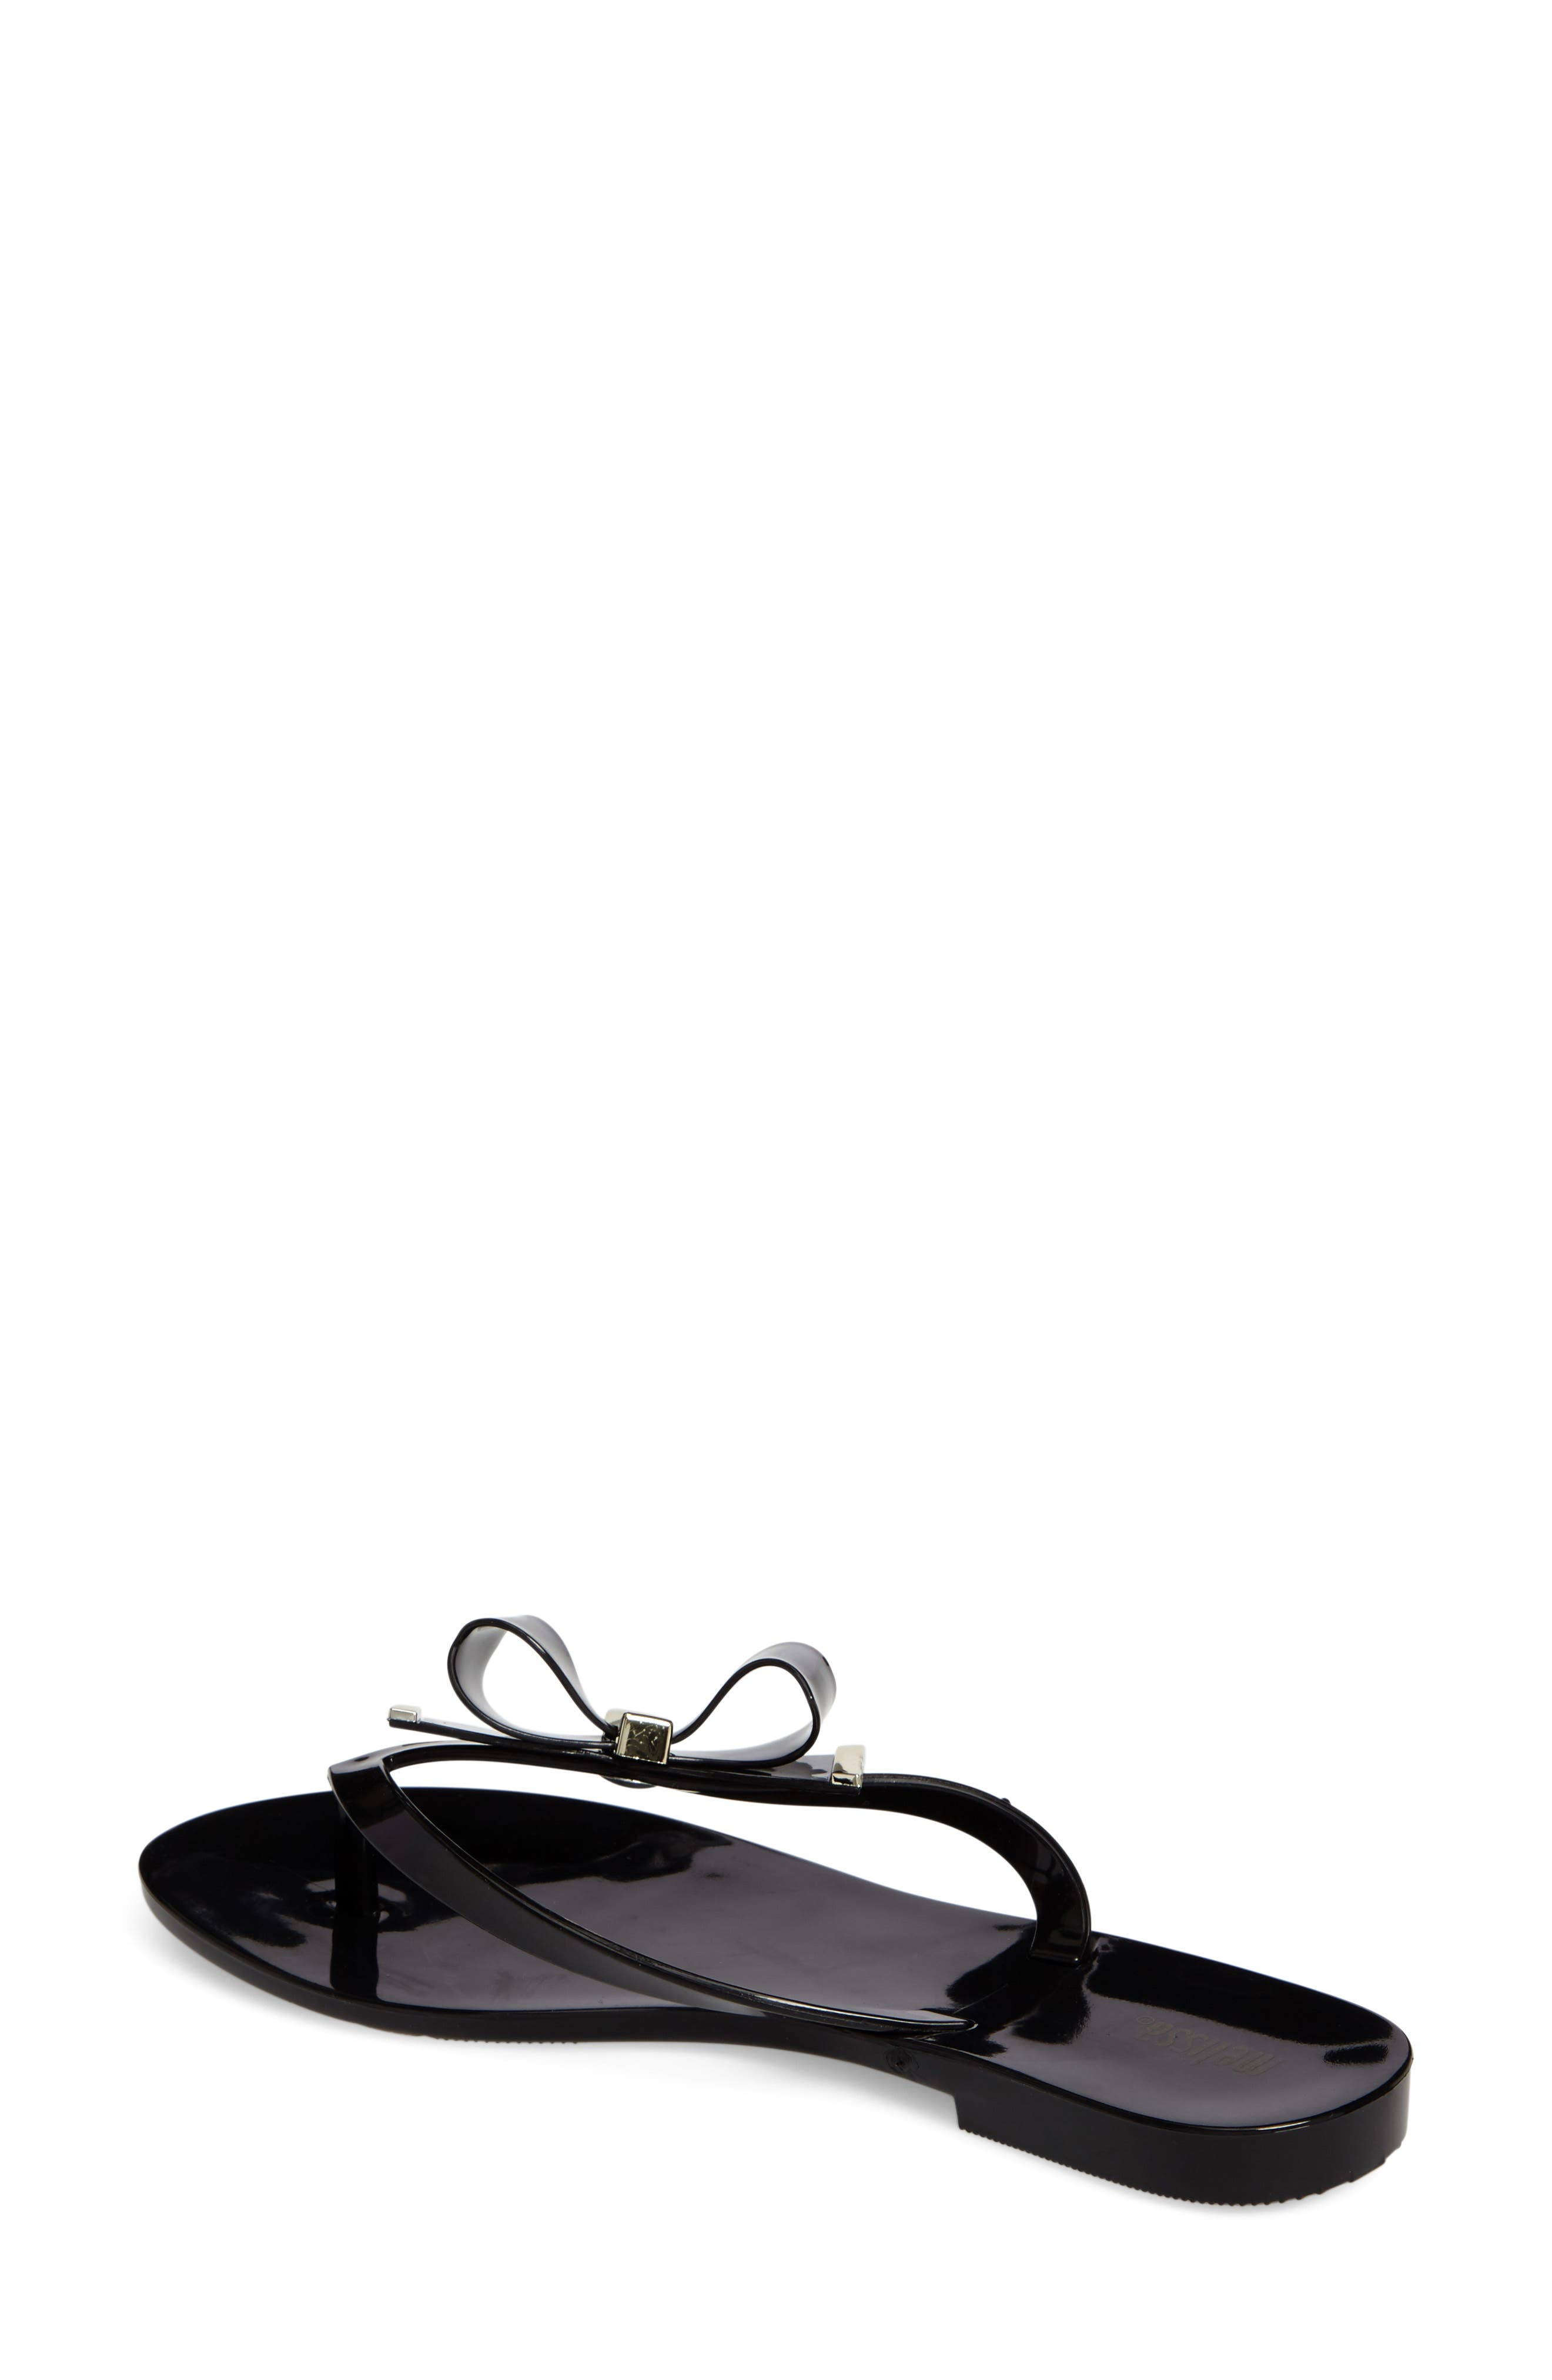 Harmonic Make a Wish Jelly Flip Flop,                             Alternate thumbnail 2, color,                             001